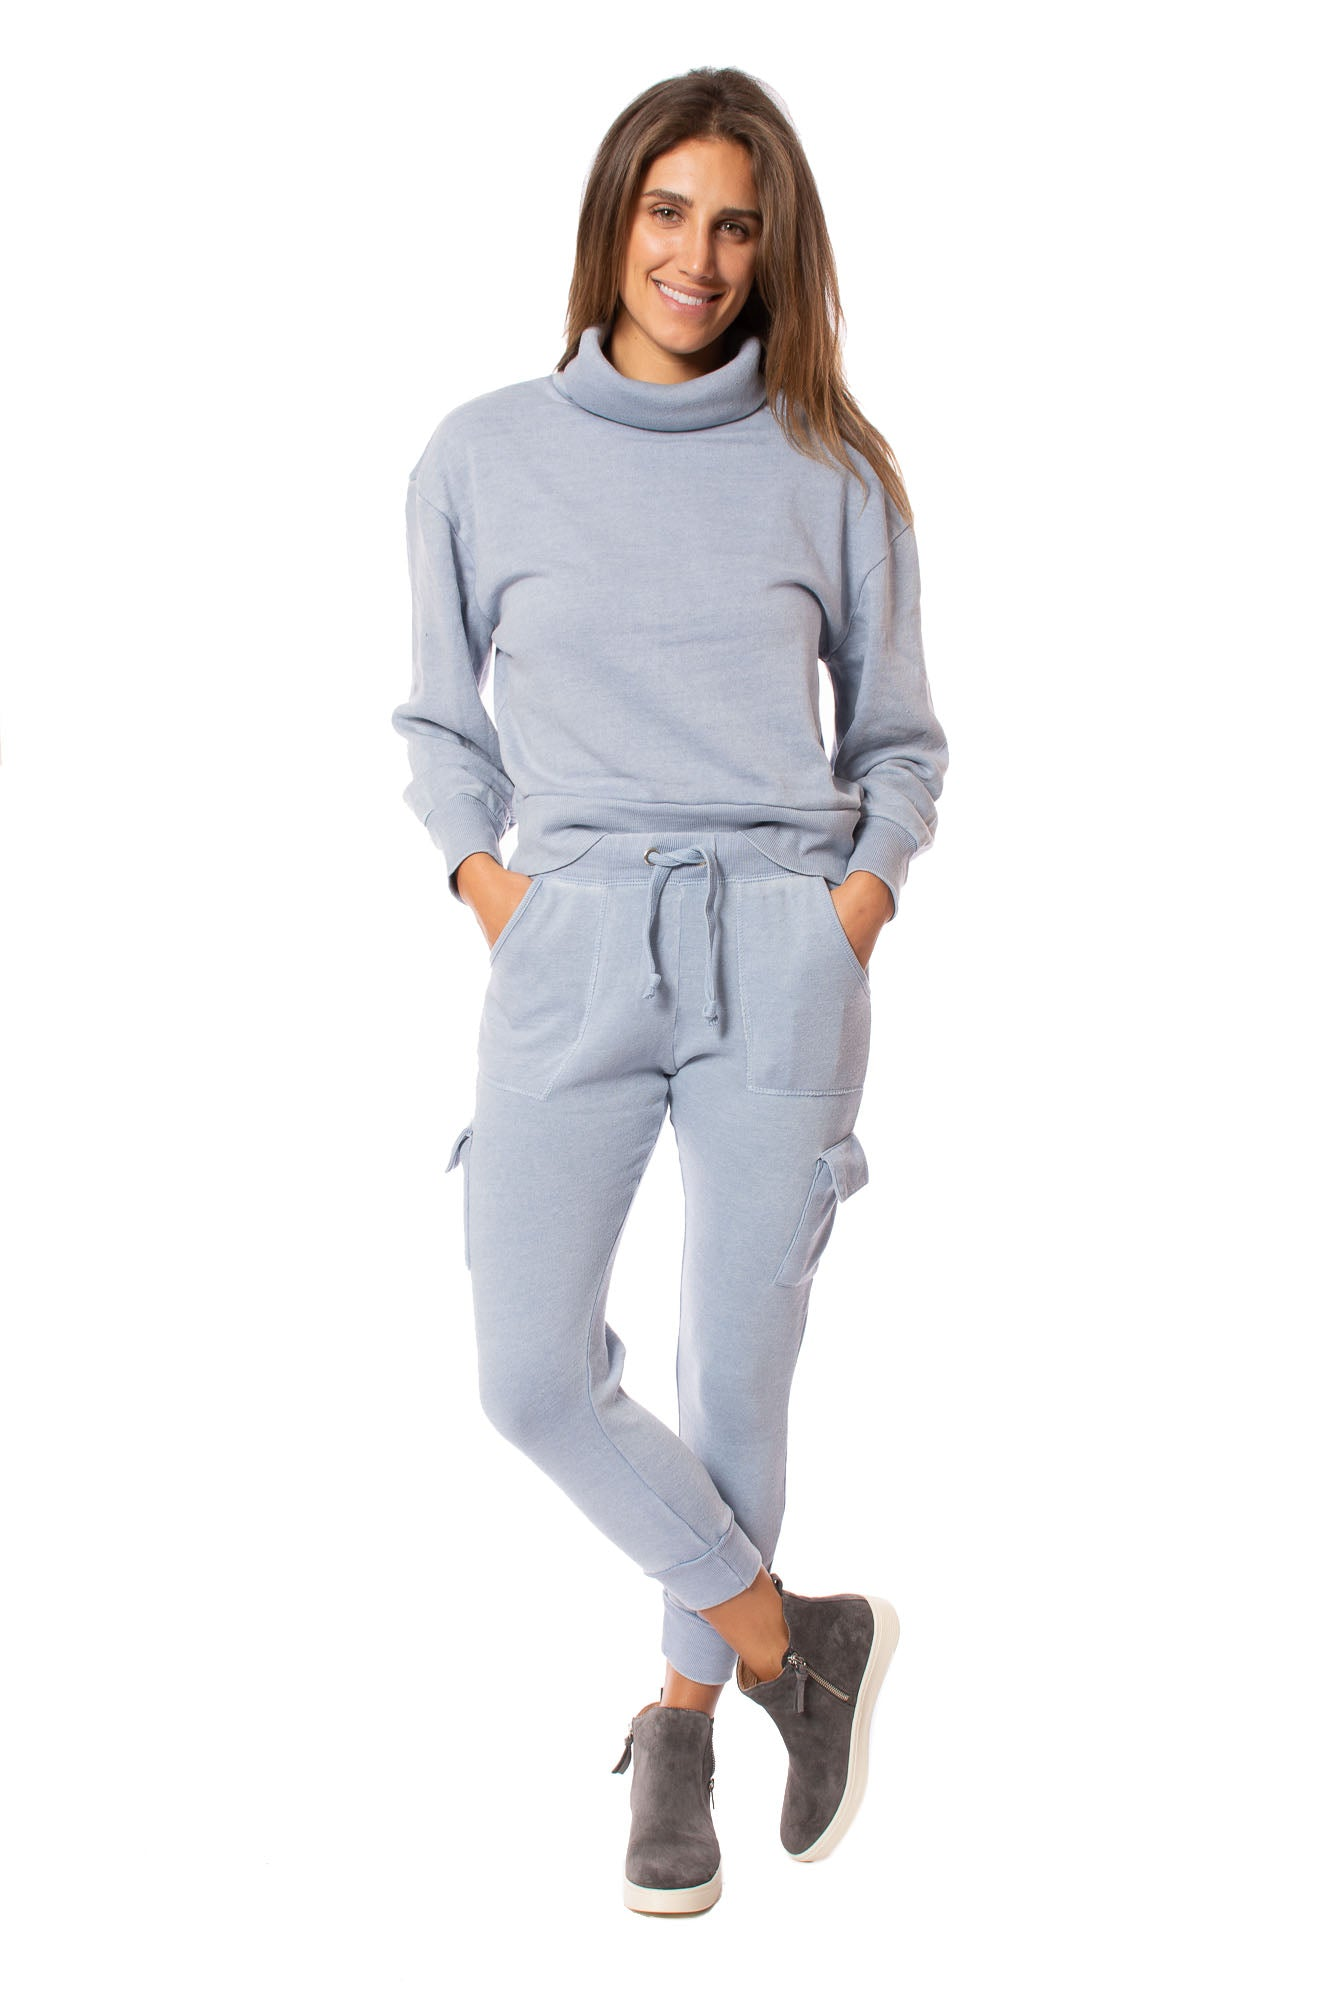 Burnout Drawstring Jogger (Style vh8864, Light Sky Blue) by Vintage Havana